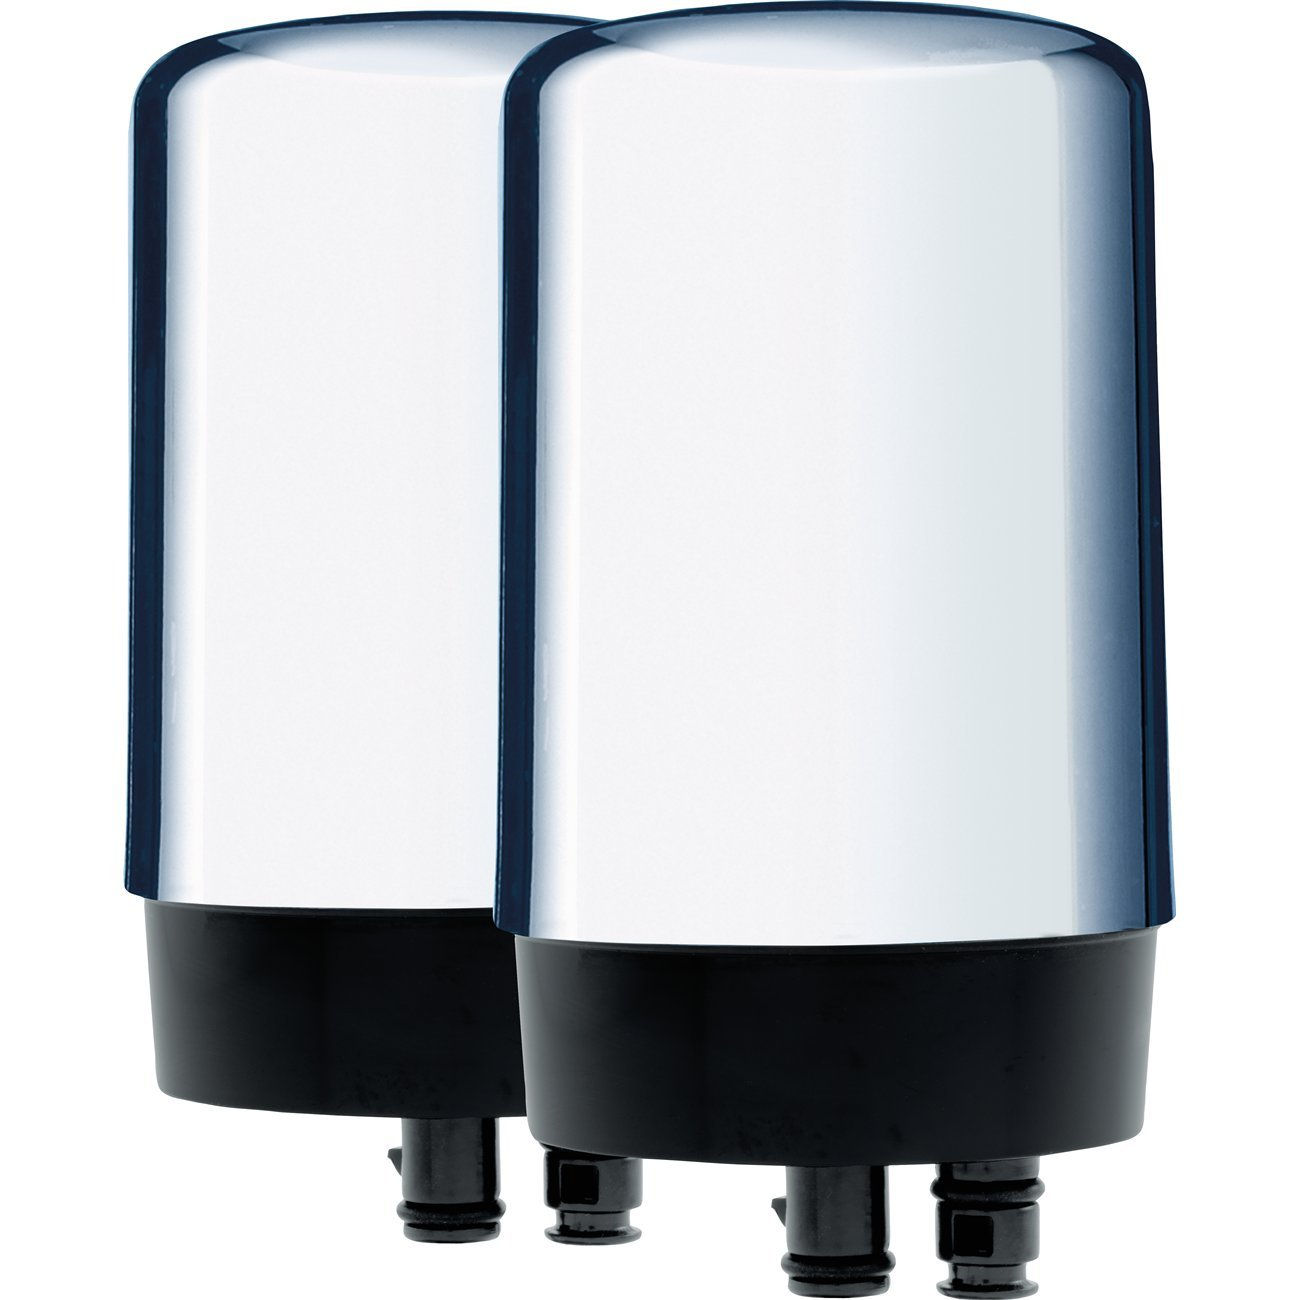 Brita On Tap Water Filtration System Replacement Filters For Faucets - Chrome - 2 Count